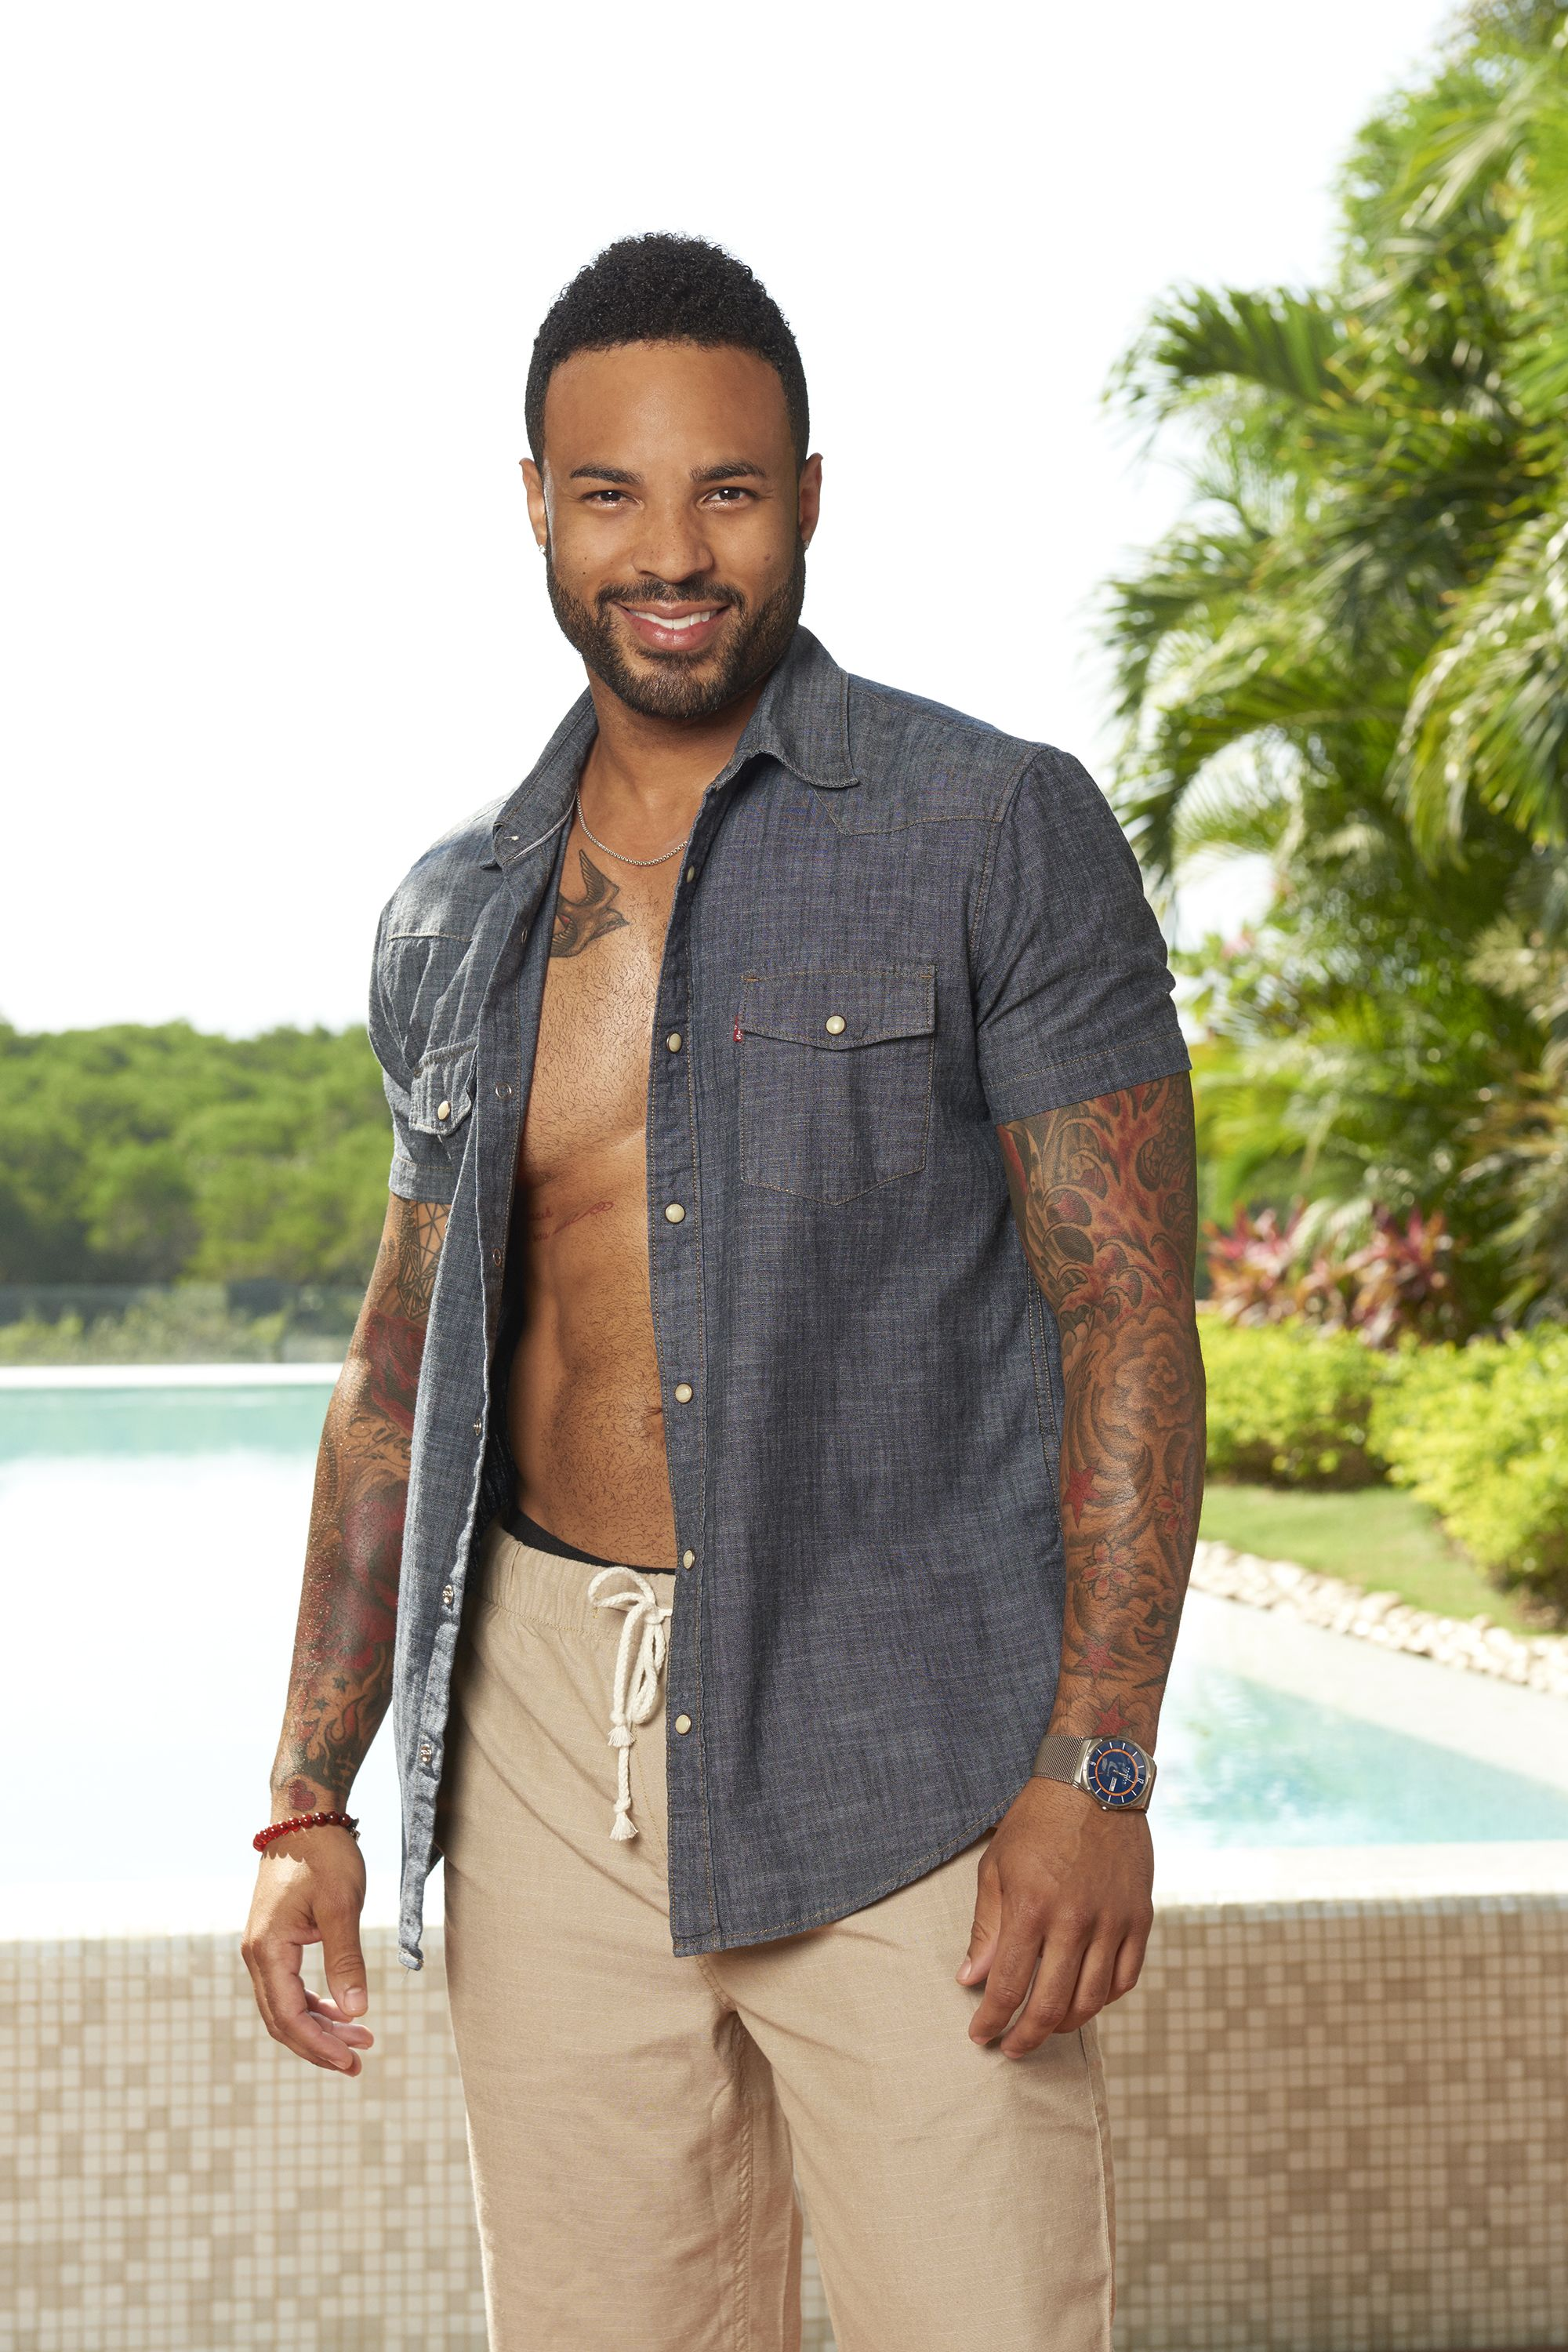 Pin For Later: Bachelor In Paradise Lineup: Here Are The Sexy Franchise  Favorites Playing Jonathan Holloway Age: 33 Previous Season: Kaitlyn  Bristowe Most ...